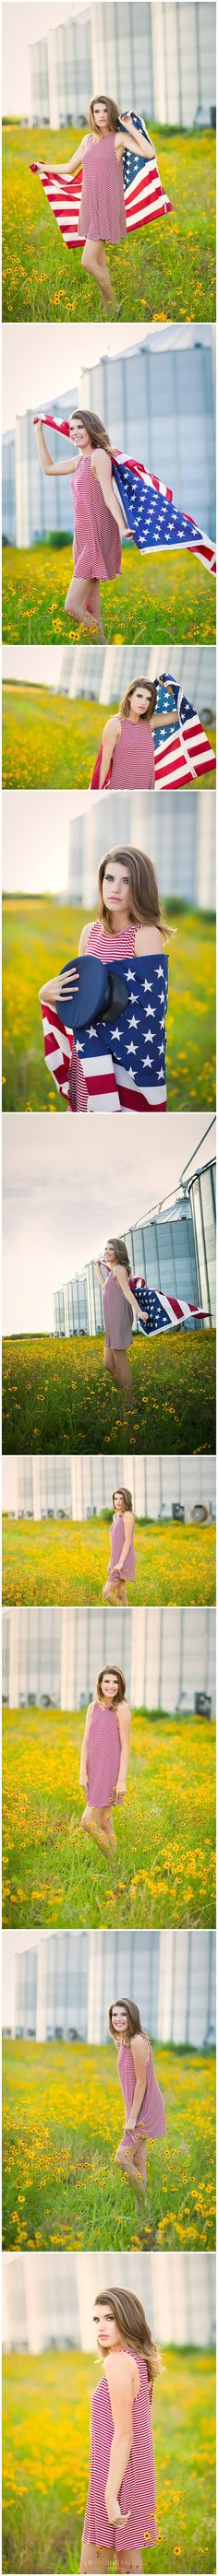 Madison | Armorel High School | 2017 Senior www.amberoxleyphotography.com urban senior, senior dress, senior pose, senior girl poses, senior style, senior fashion, modern, arkansas photographer, missouri photographer, tennessee photographer, senior pictures, ideas, blytheville photographer, , rural photography, casual summer outfit, farm, silos, wild flowers, american flag, 4th of July, patriotic, amber oxley